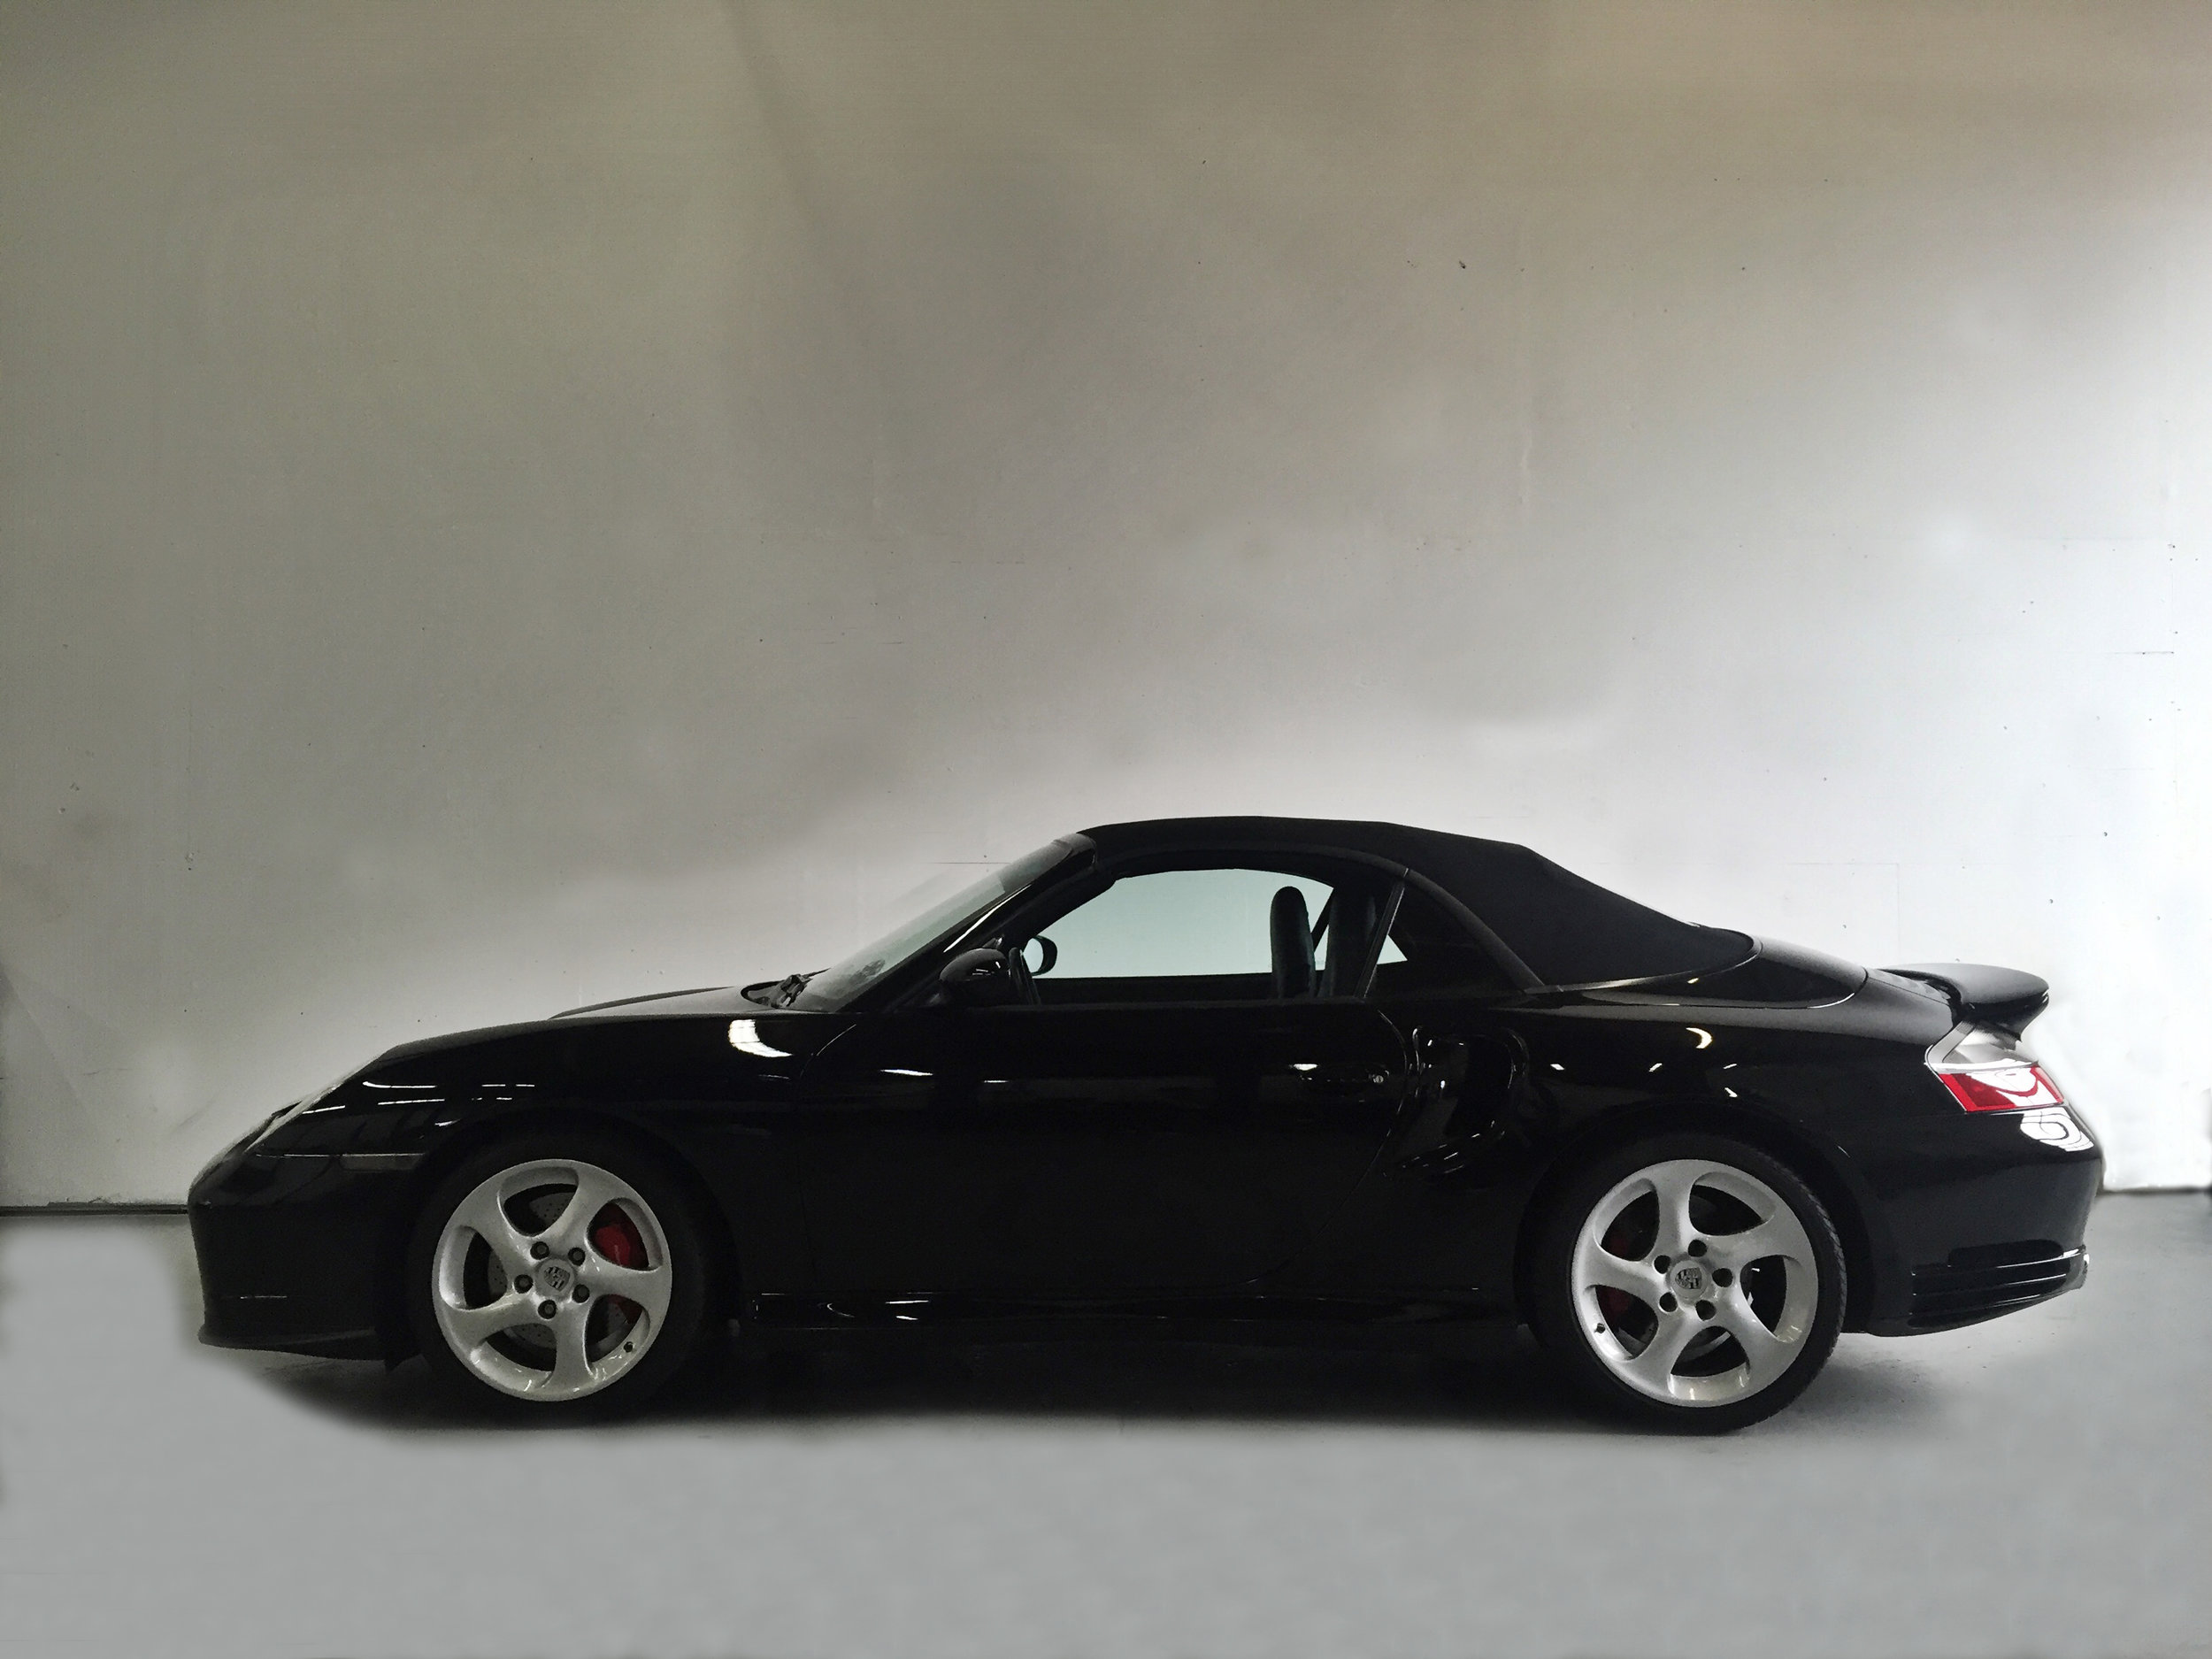 Botta Moto Works Porsche 996 Turbo Cab side 2.jpg